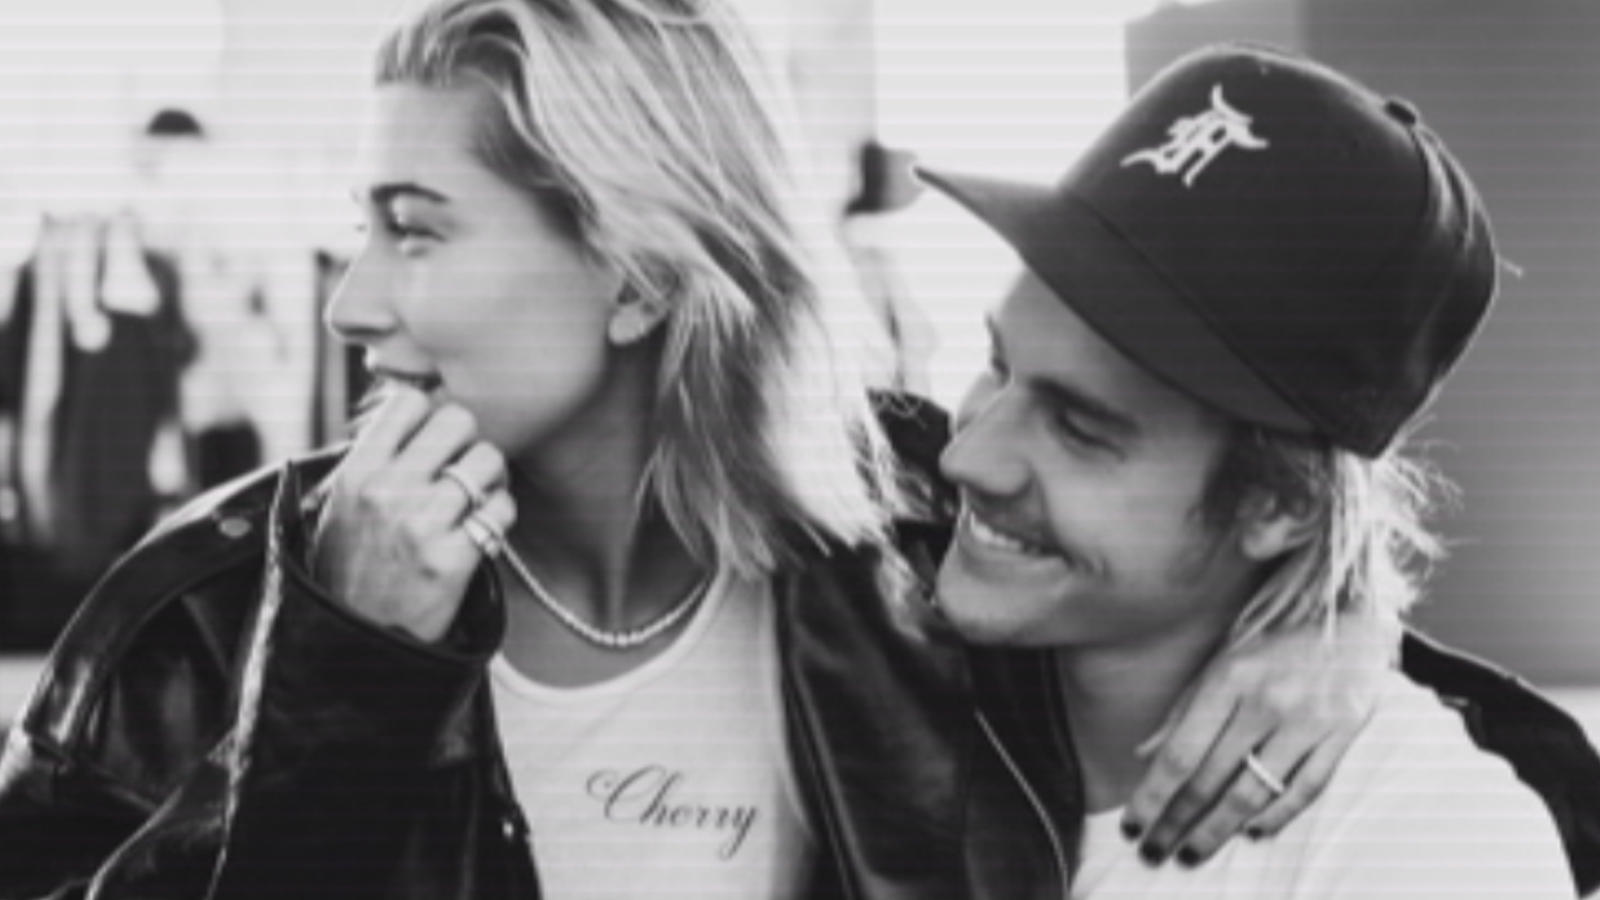 Justin Bieber in no rush to have kids but looks forward to 'daddy daughter dates'